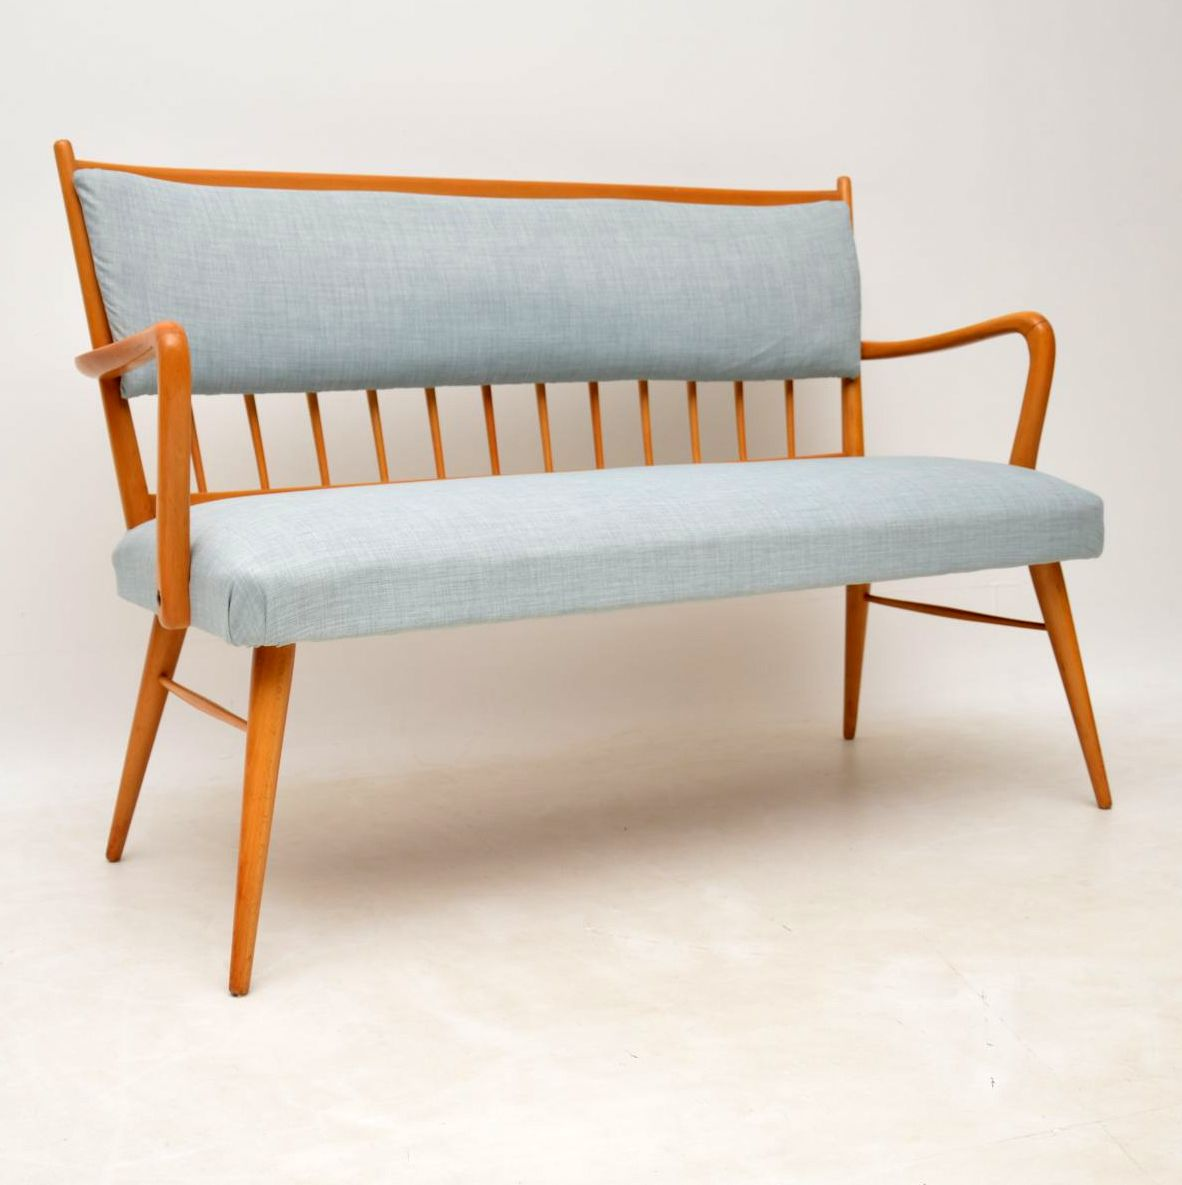 1960 S Vintage Danish Sofa Bench Retrospective Interiors Vintage